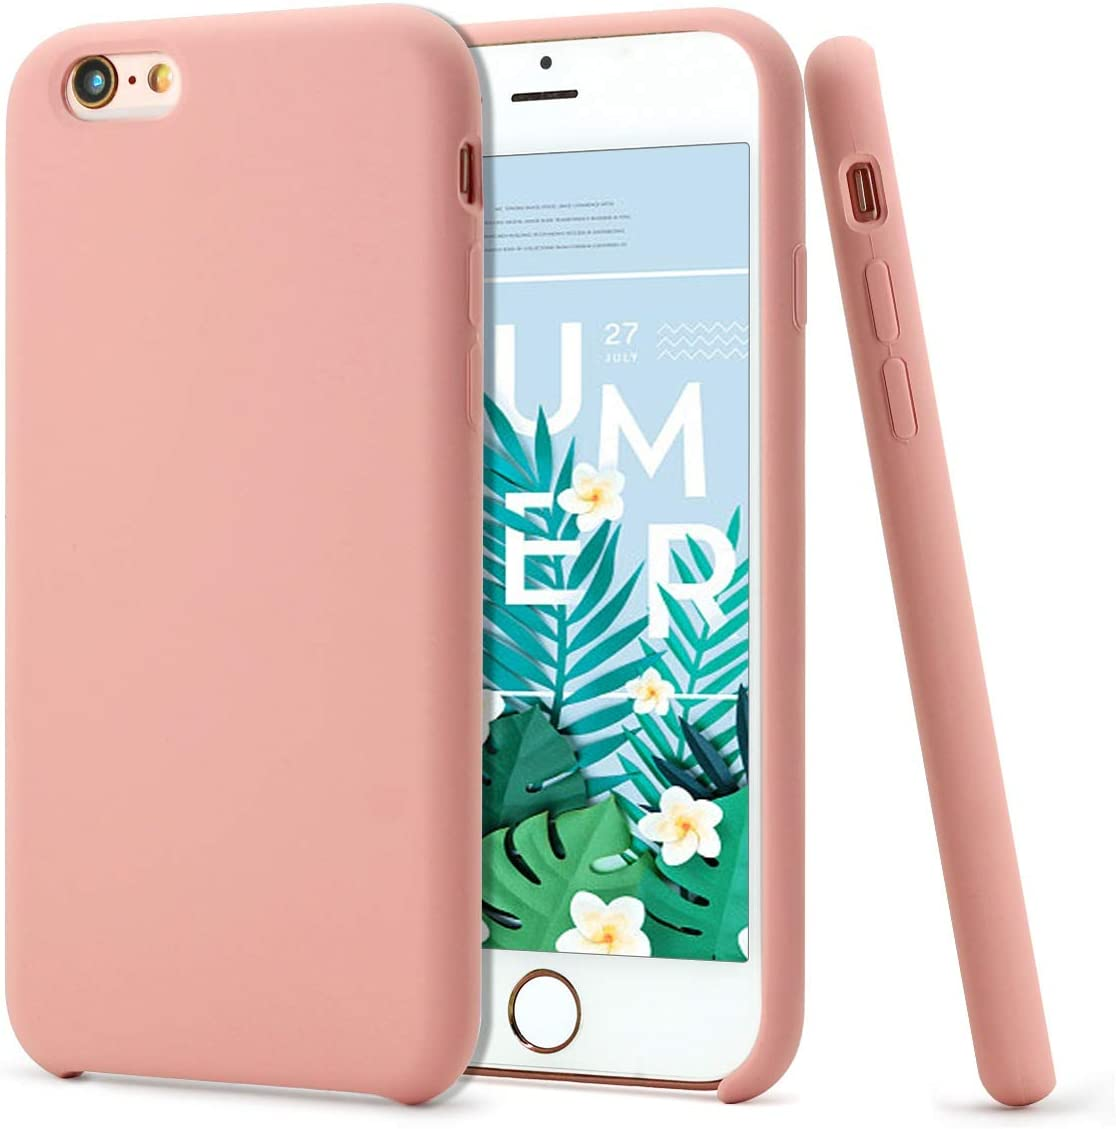 MUNDULEA Compatible iPhone 6/iPhone 6s Case,Liquid Silicone Rubber Soft Microfiber Protective Cover Compatible iPhone 6/ 6s (Pink)